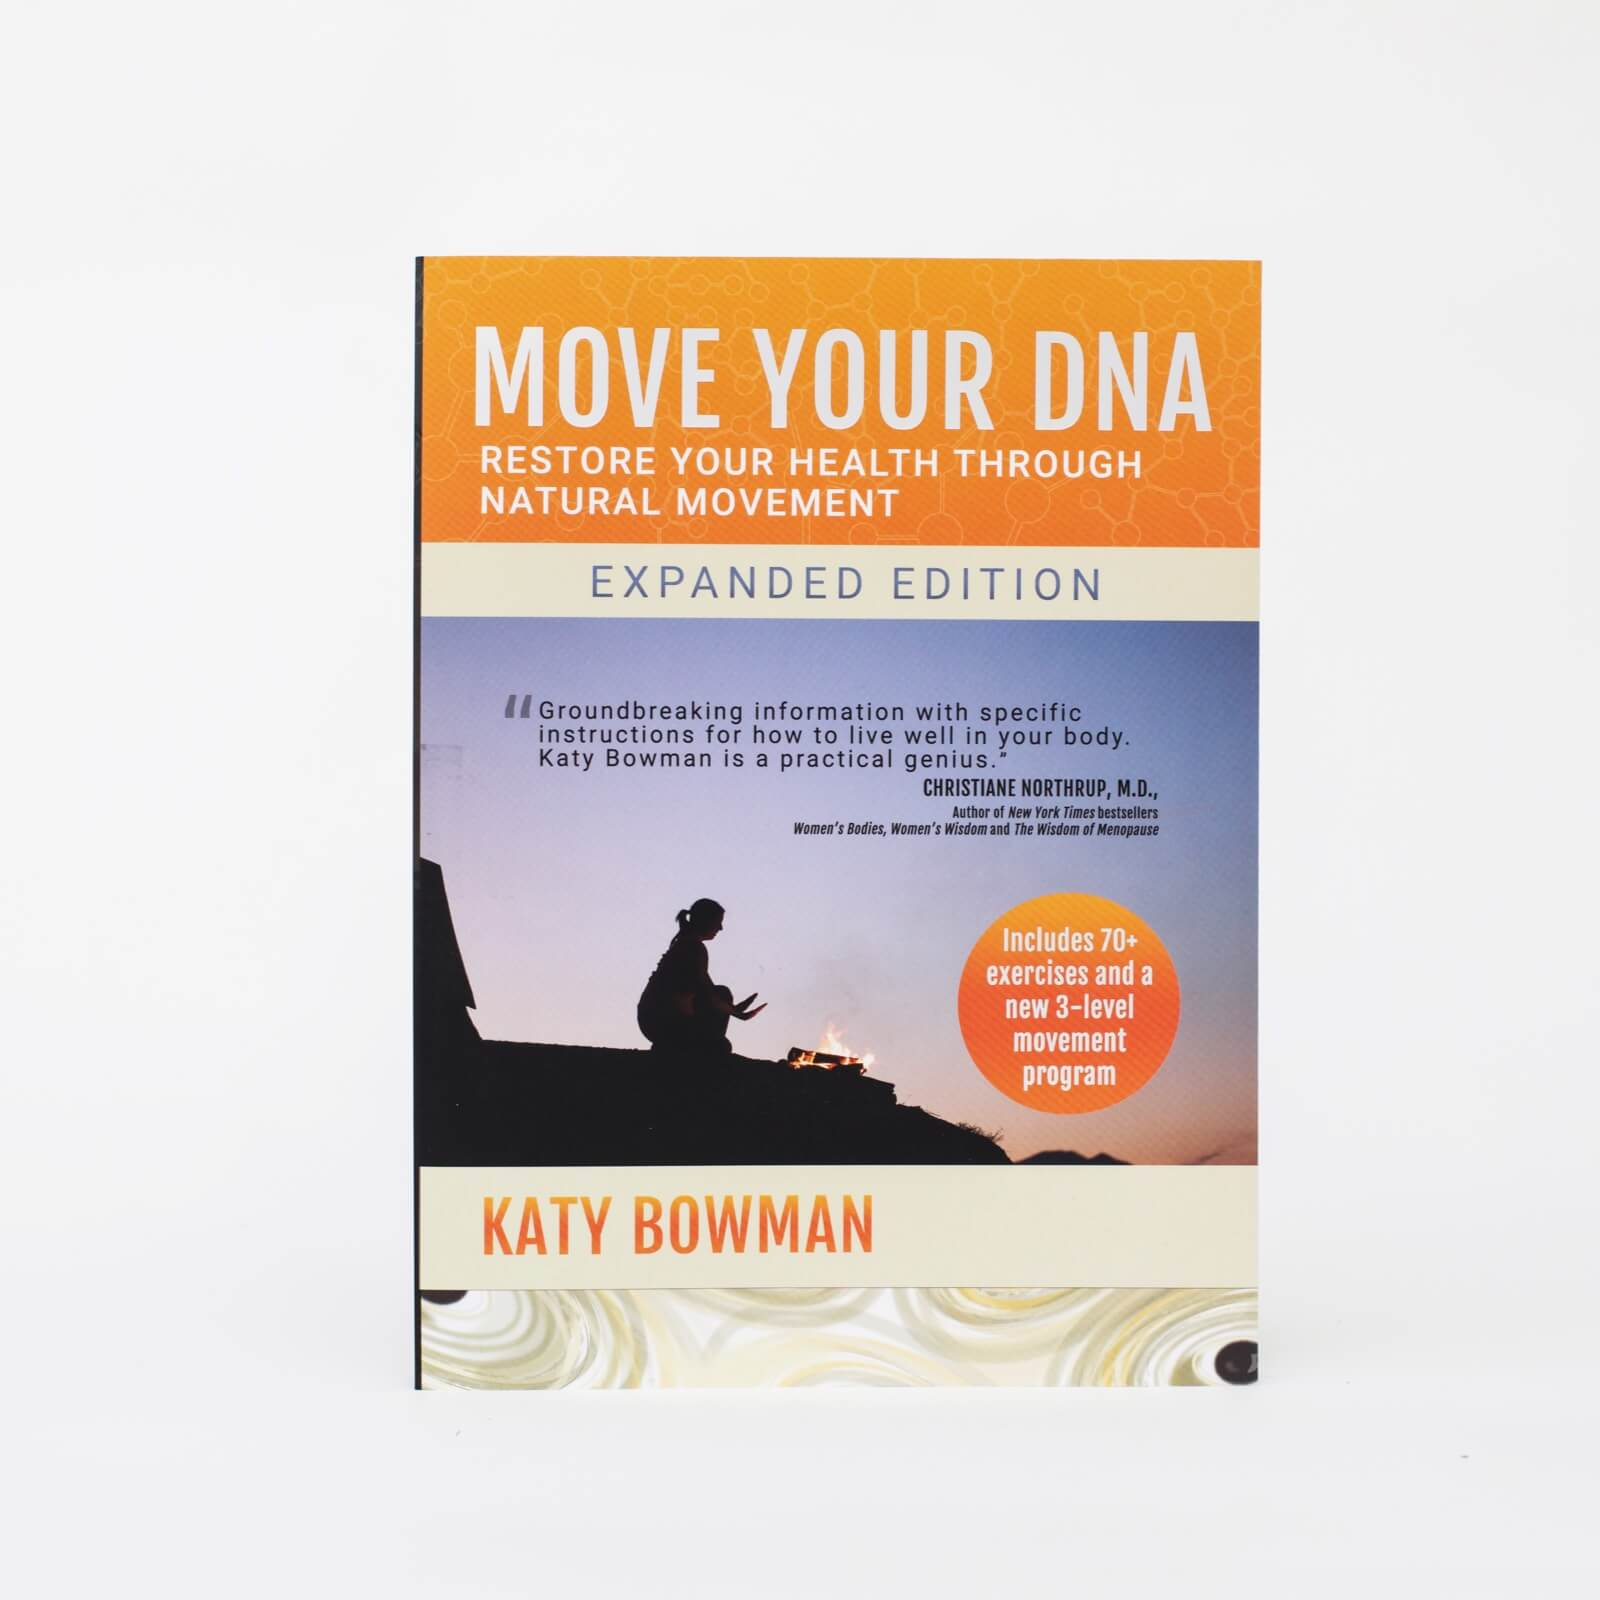 Move Your DNA book